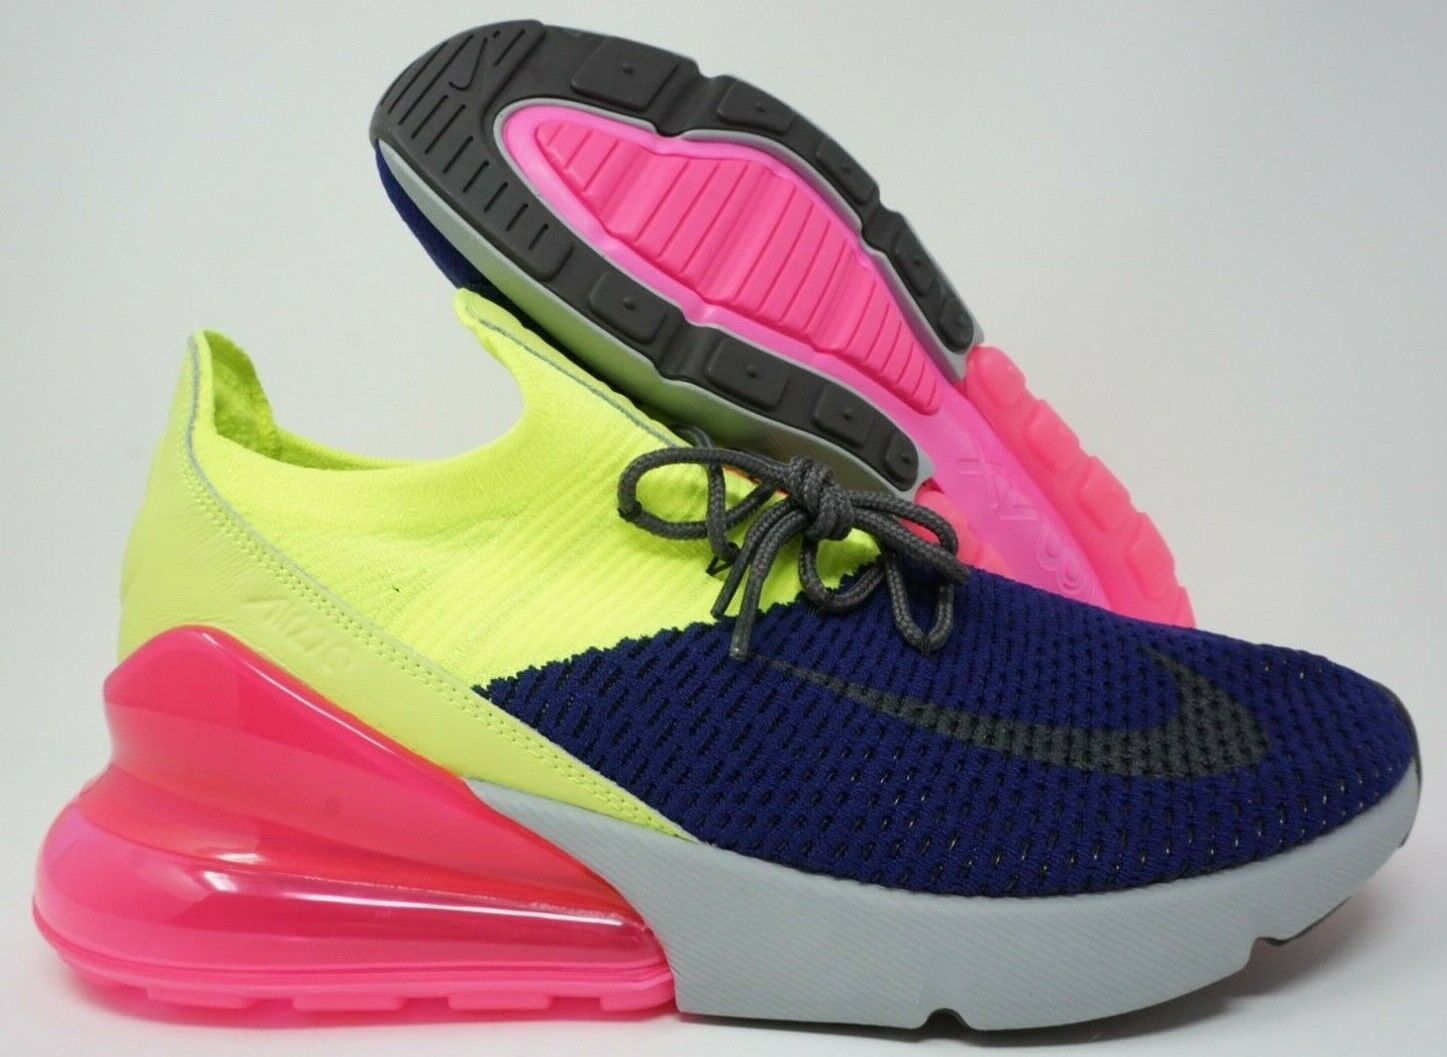 Nike Air Max 270 Flyknit Mens Running shoes Regency Purple Grey Volt Size 9.5